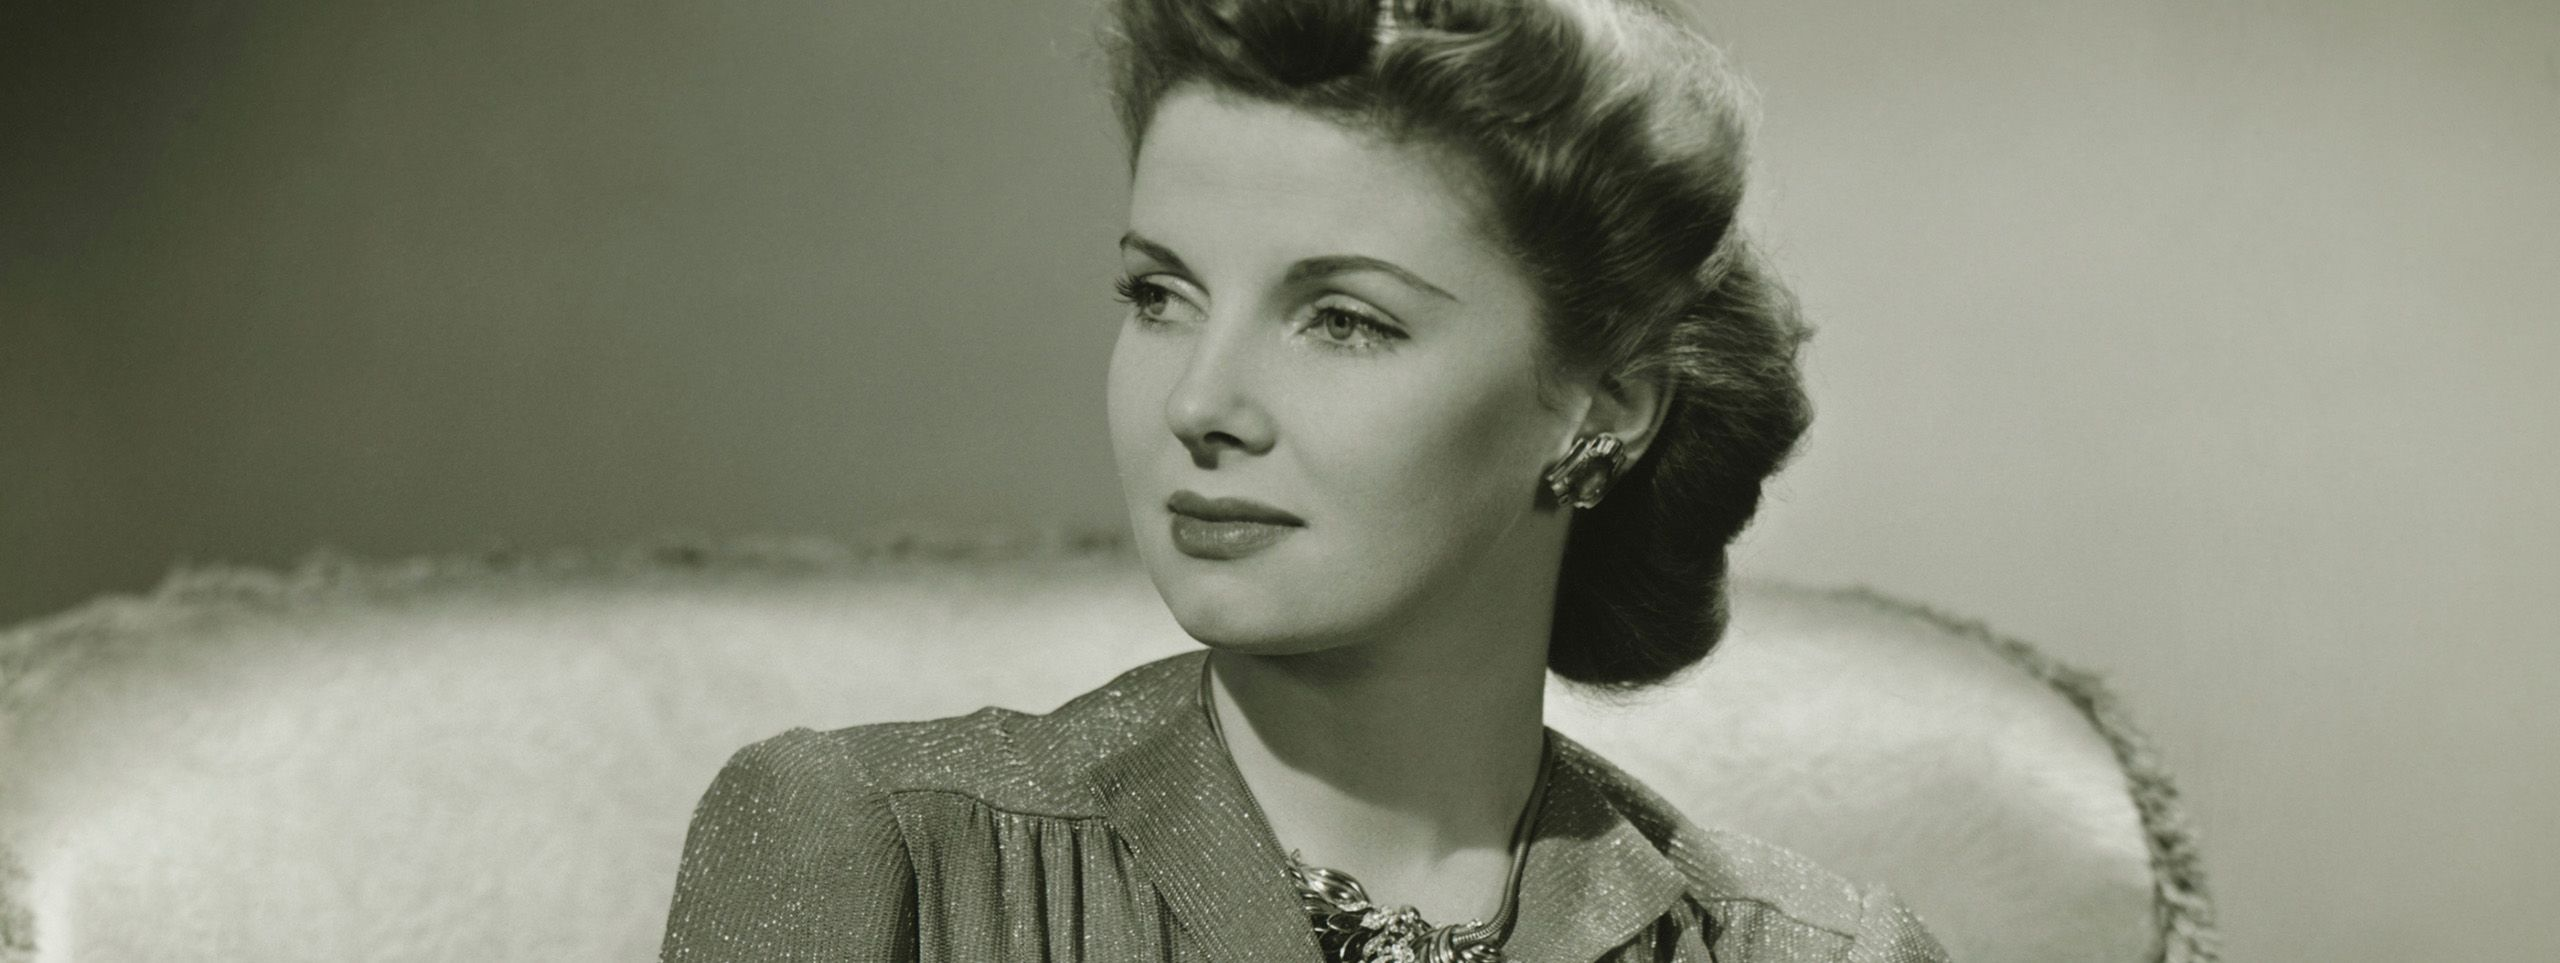 Woman with 40s style hair